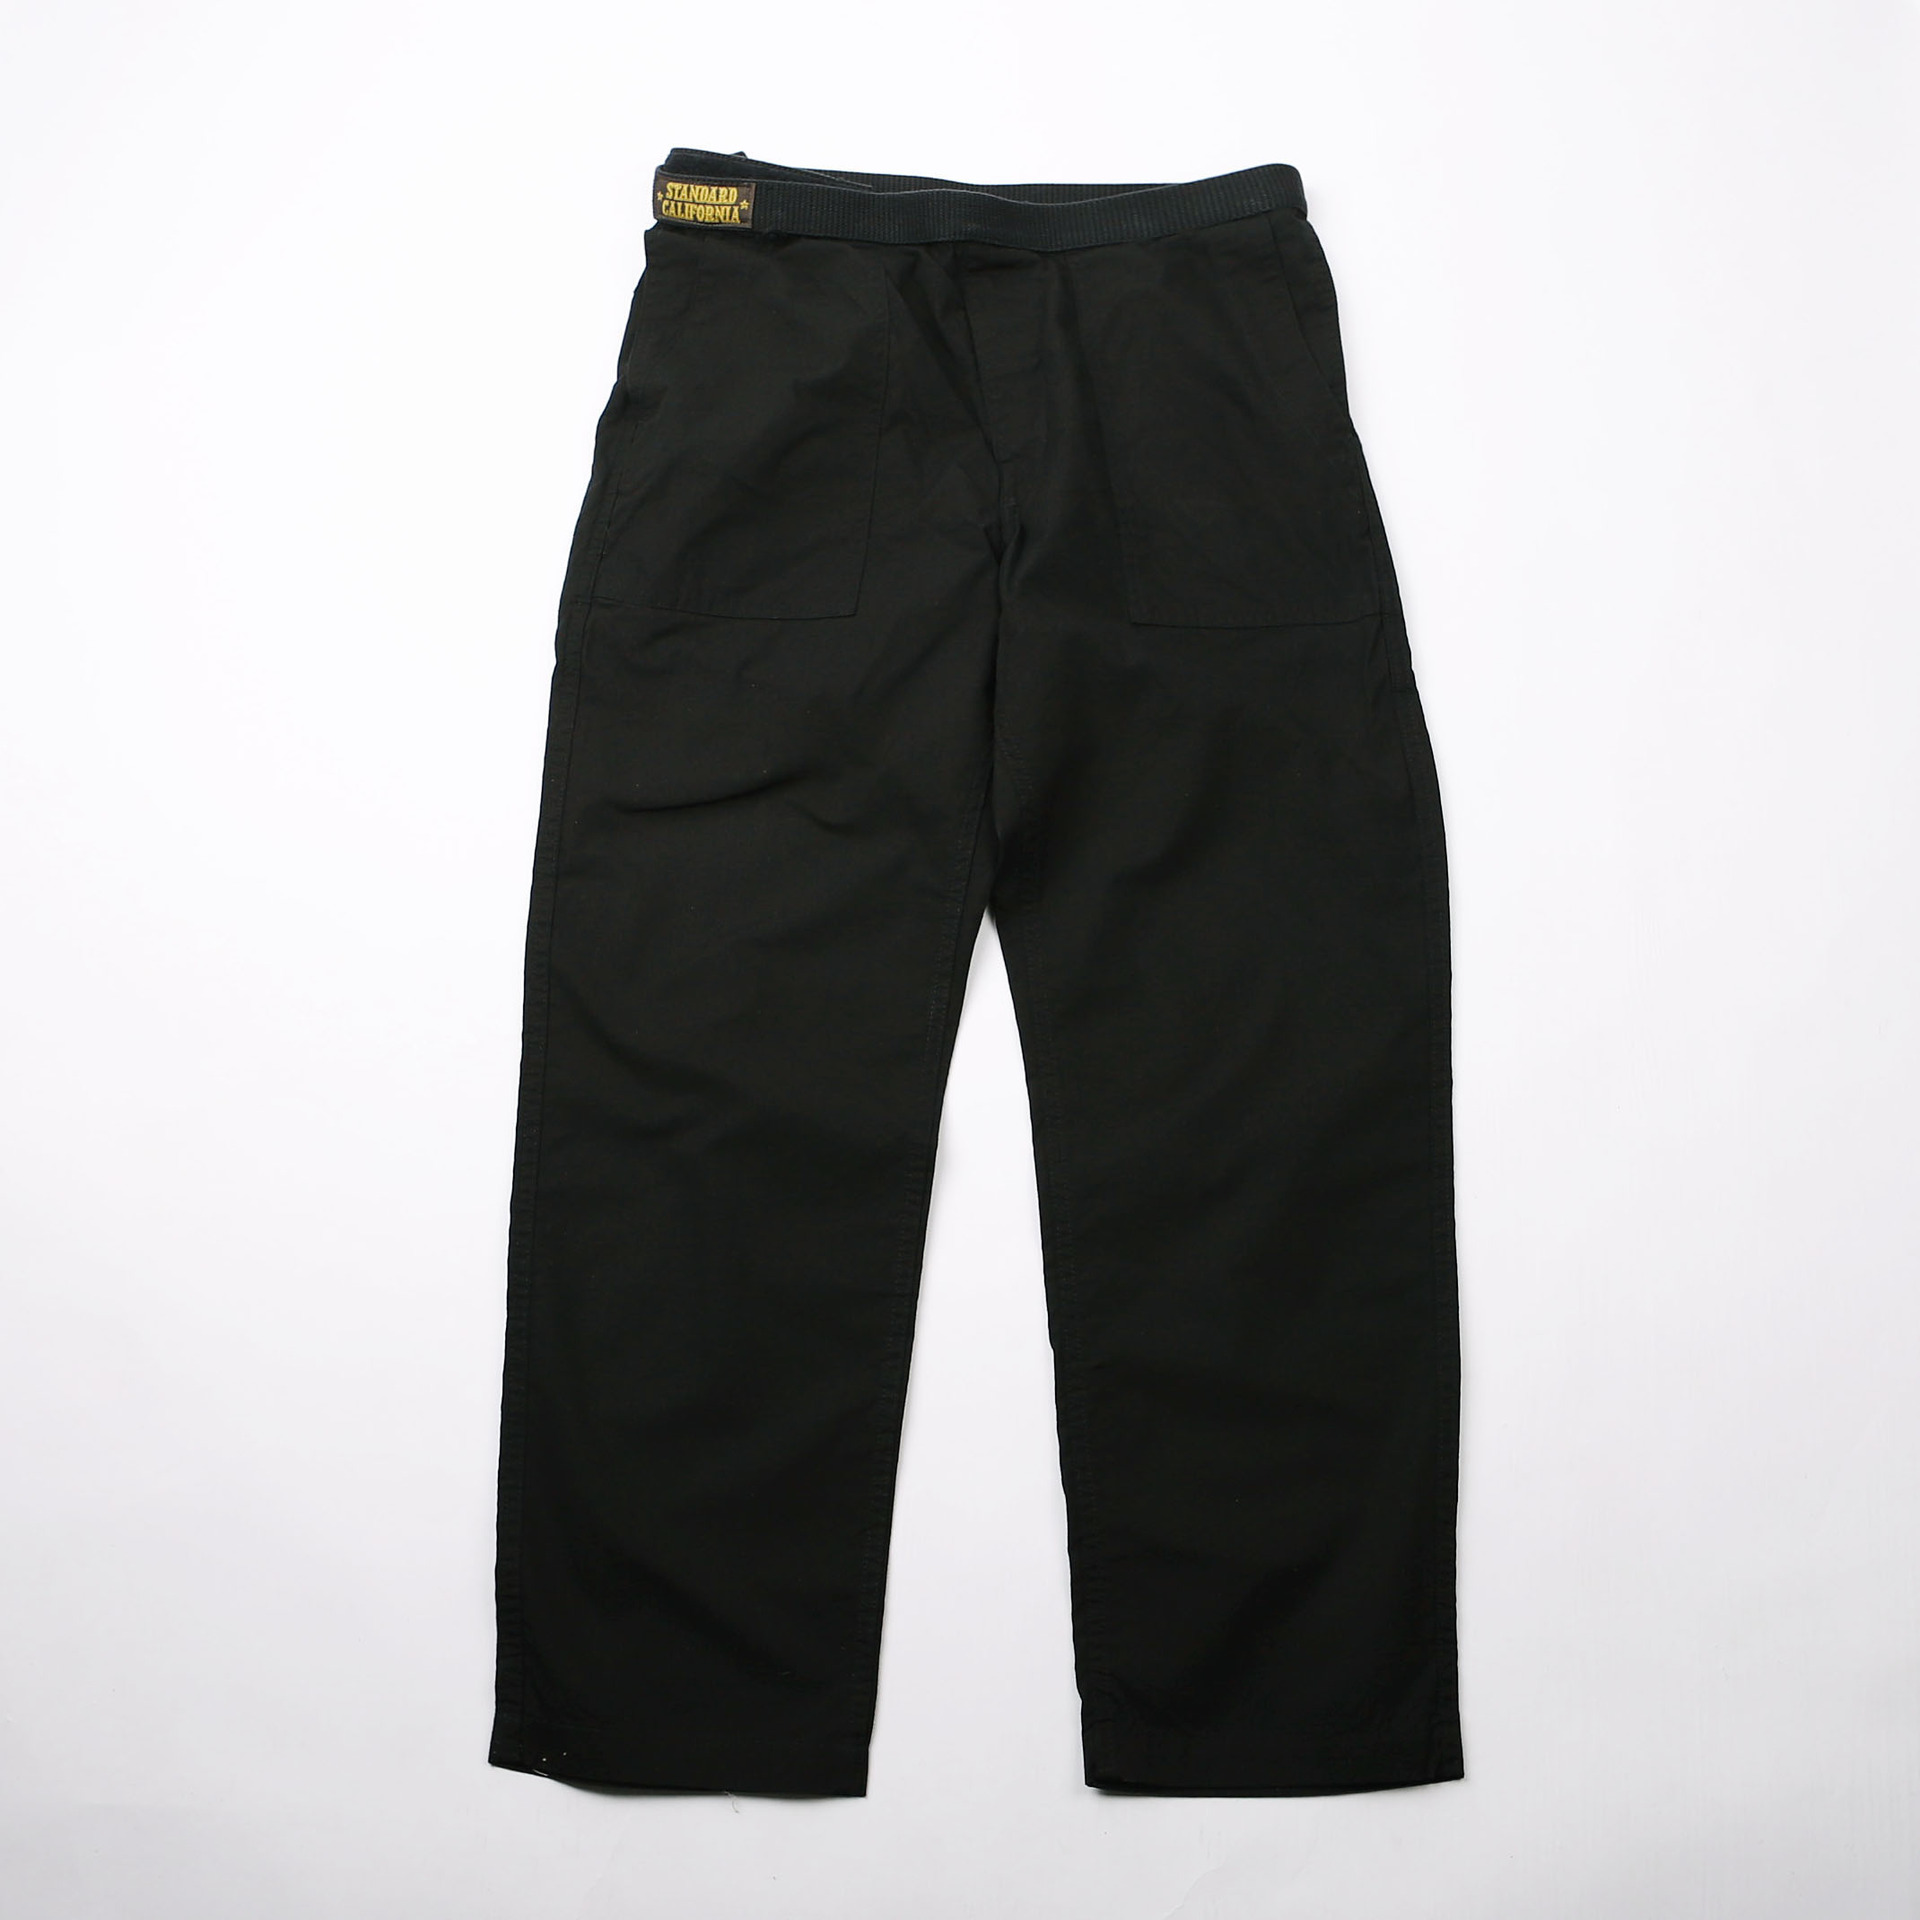 SD Easy Fatigue Pants (Black)